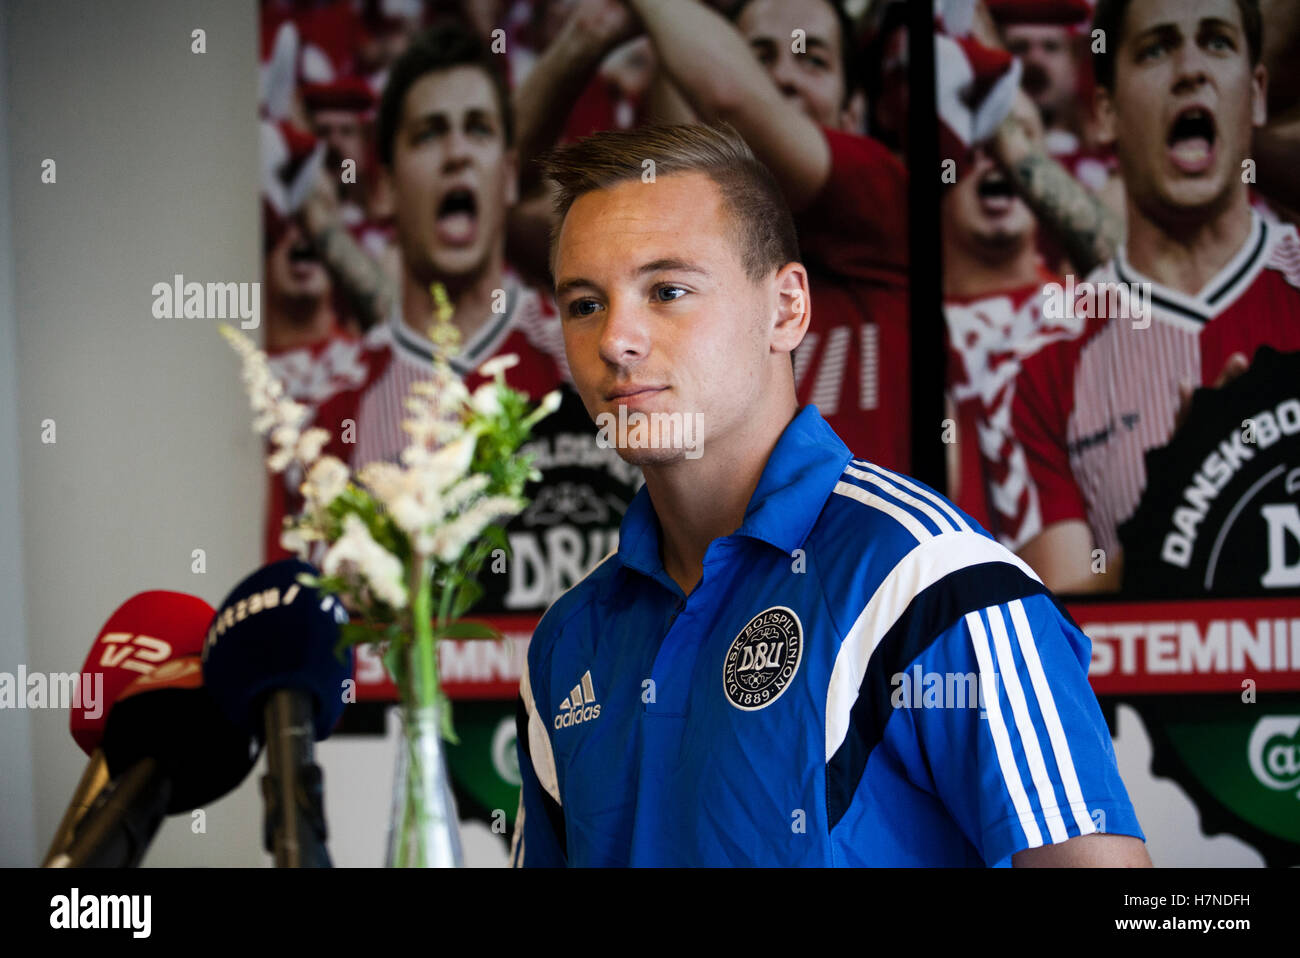 Danish footballer Uffe Bech seen at a press conference in Copenhagen. - Stock Image